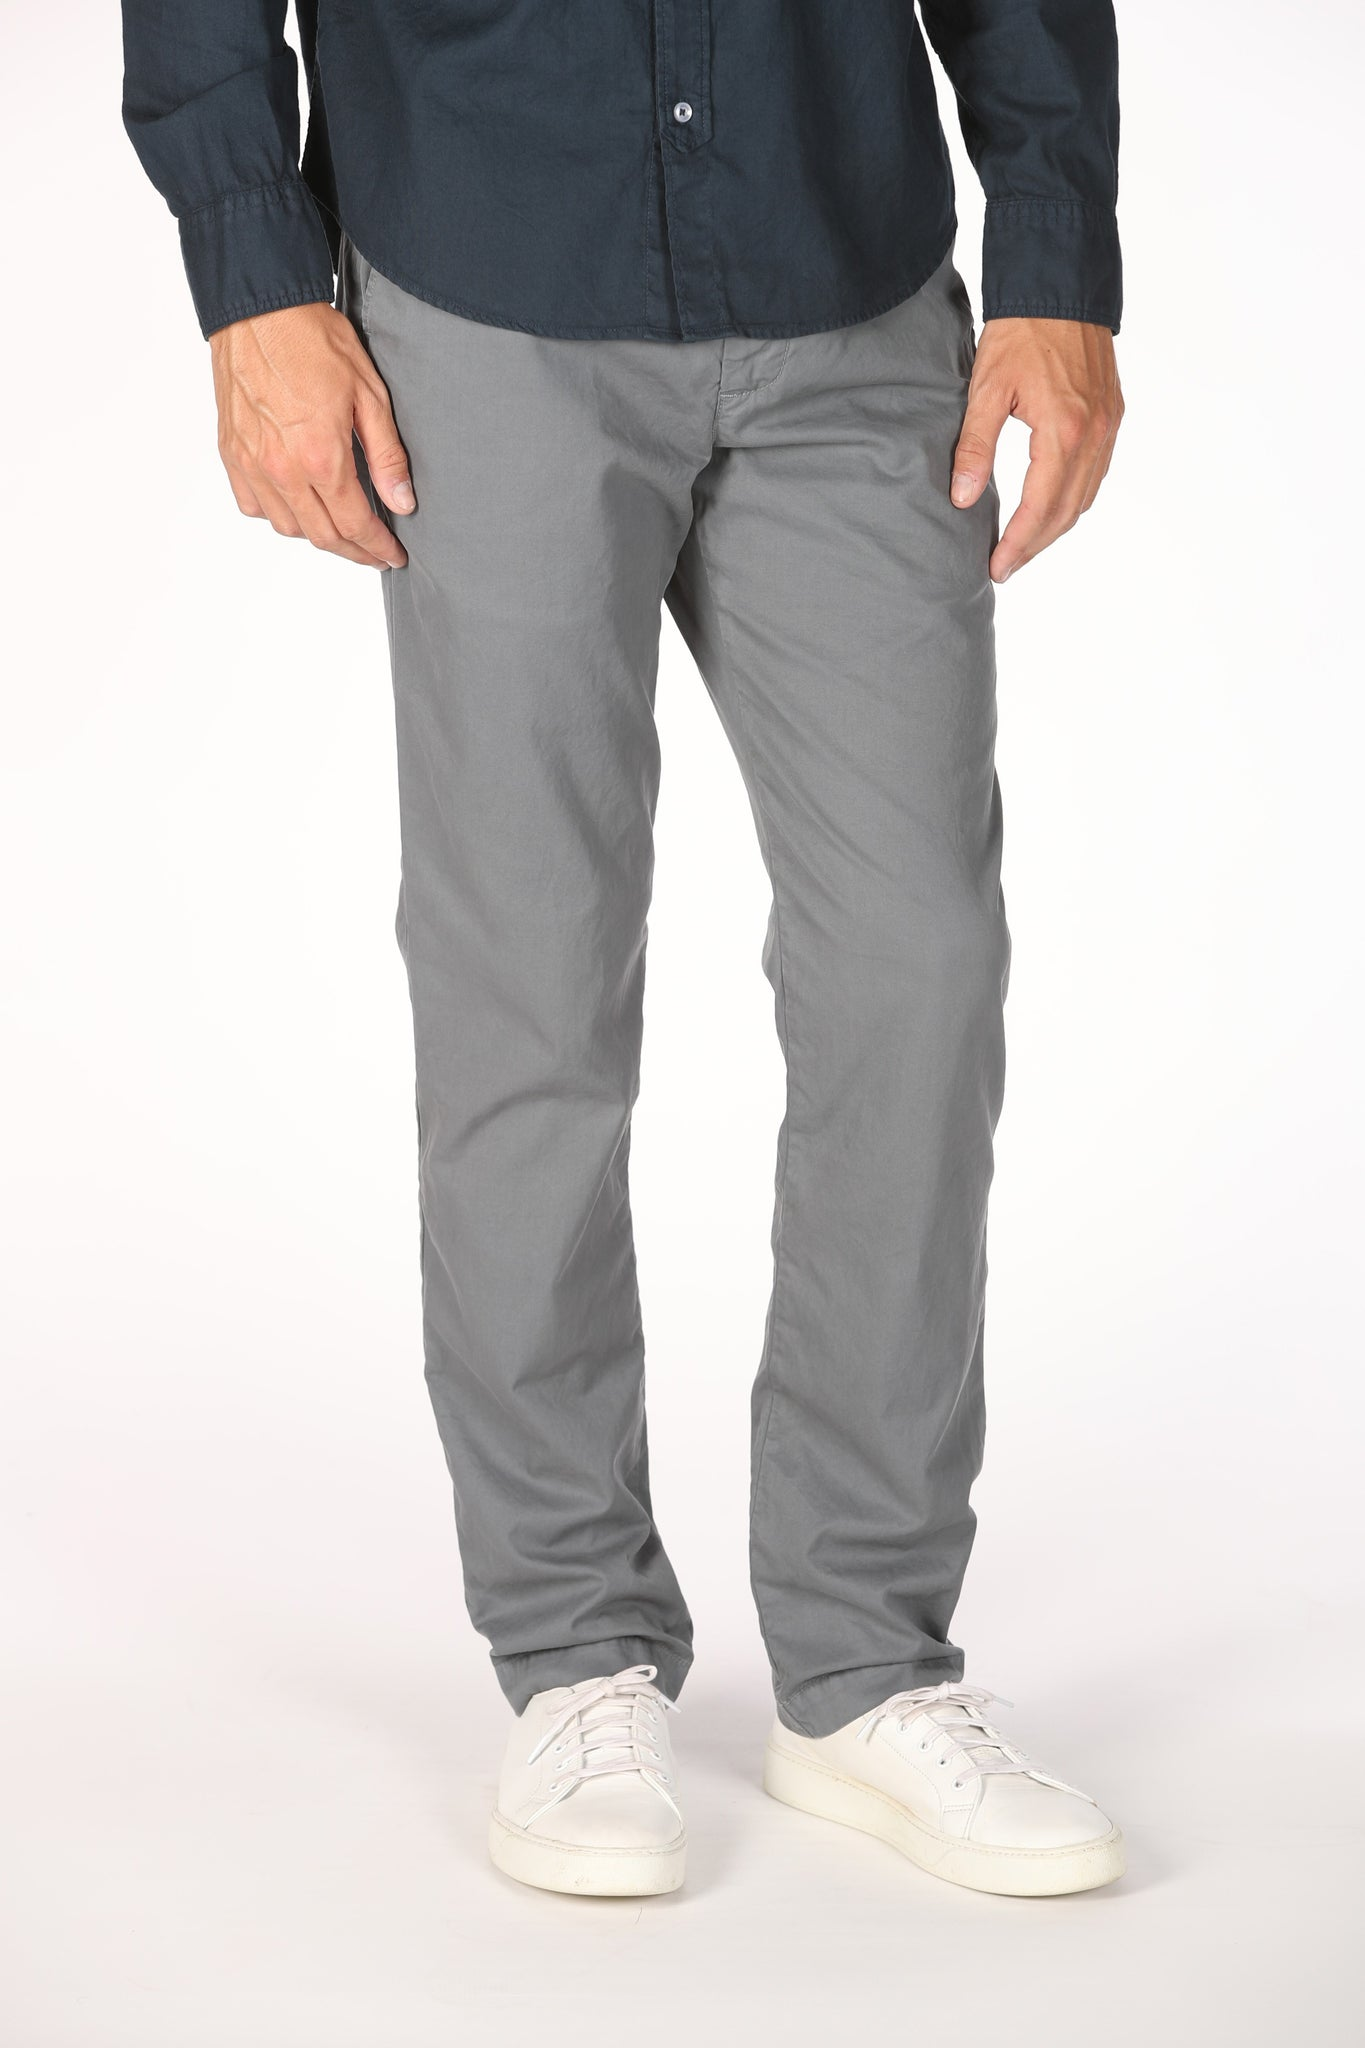 Save Khaki United Light Twill Trouser - New Metal